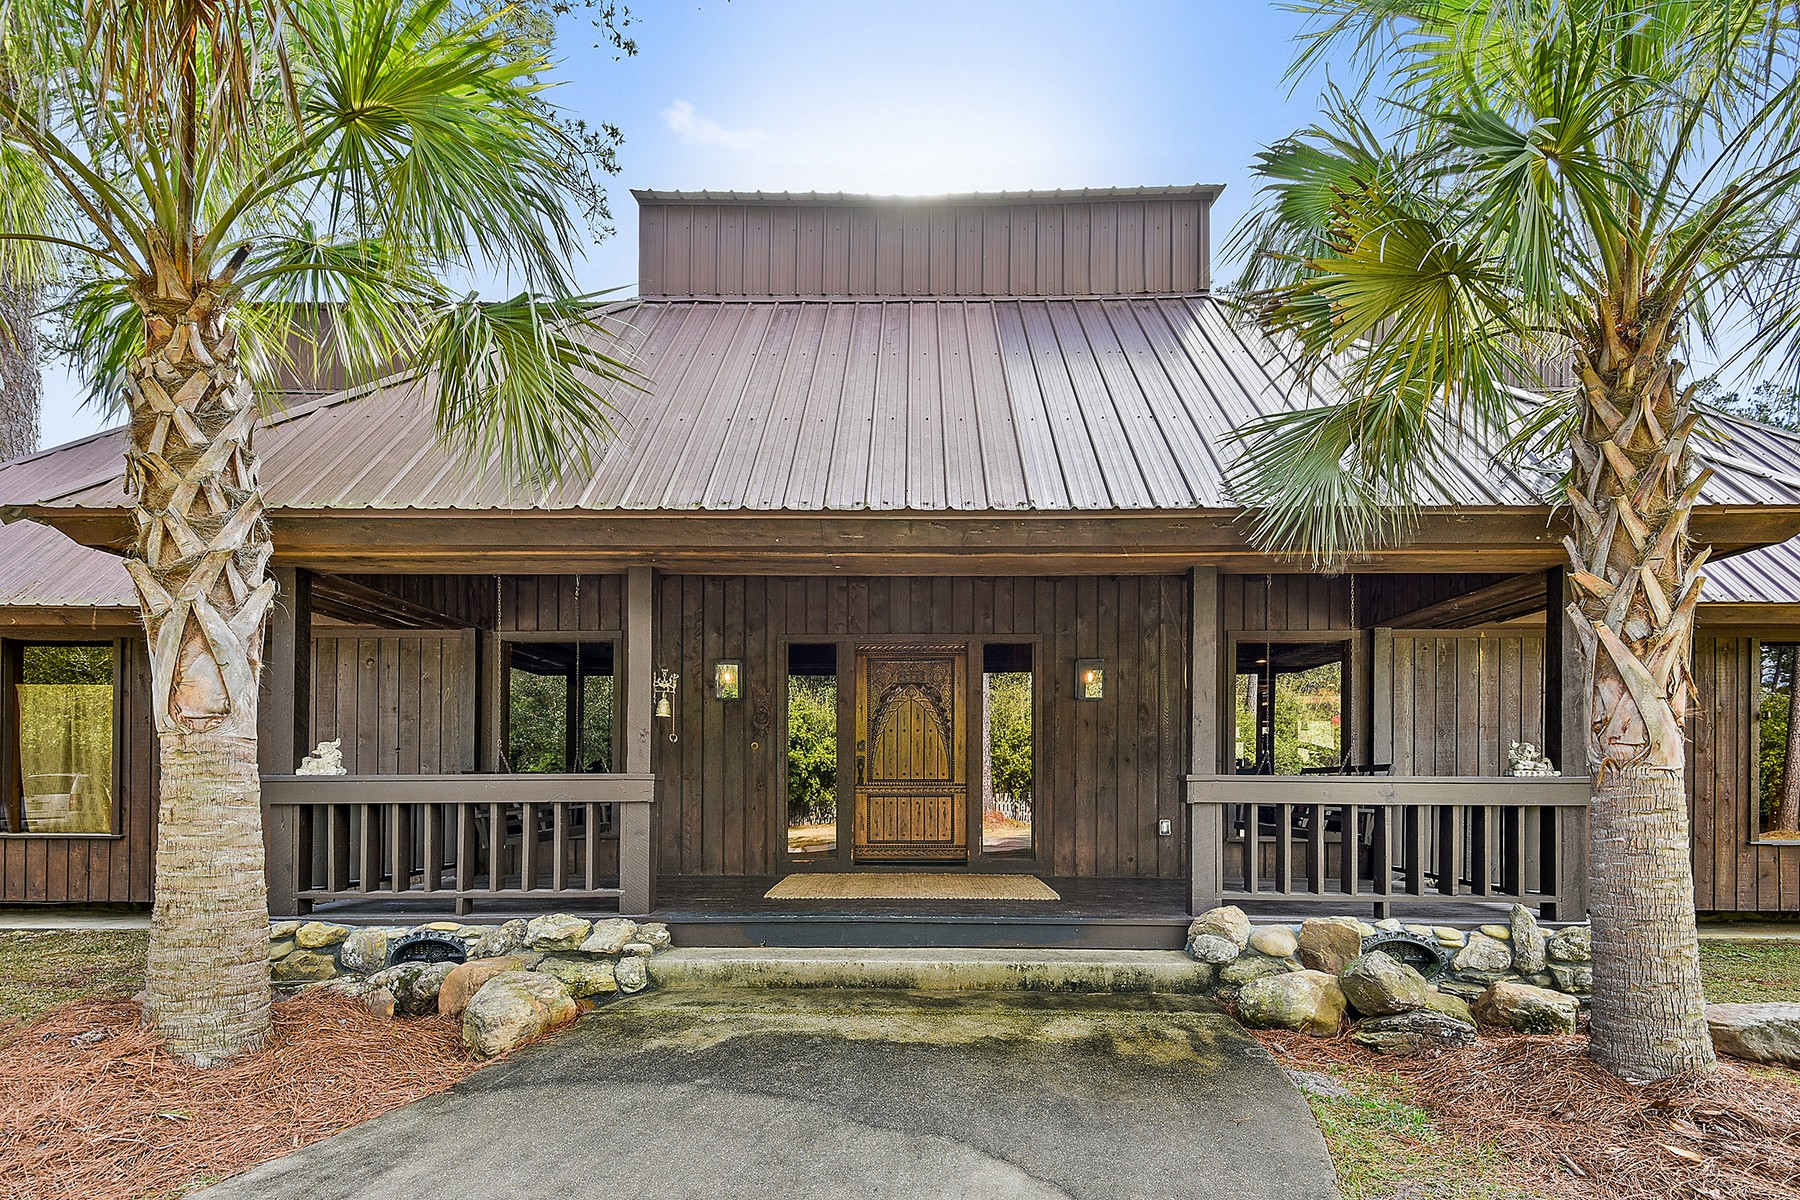 Single Family Home for Sale at 34489 Torregano Road 34489 Torregano Rd Slidell, Louisiana 70460 United States